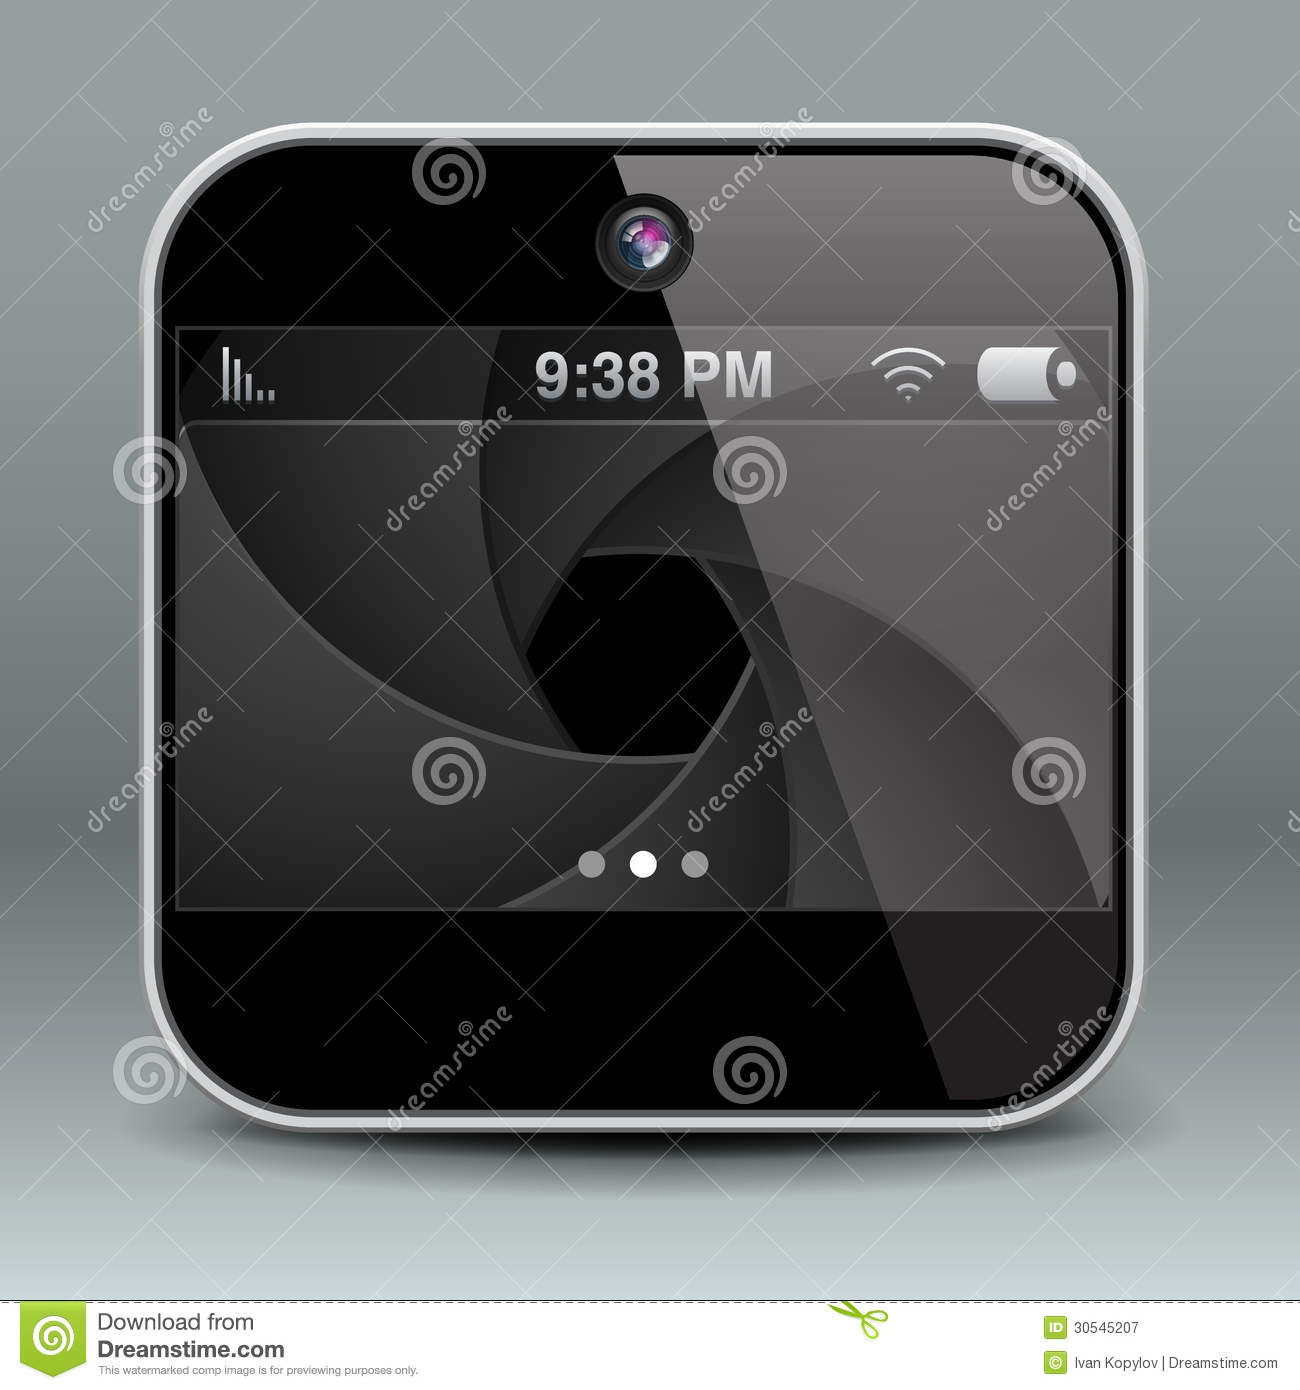 app design mobile phone camera icon royalty free stock photography image 30545207. Black Bedroom Furniture Sets. Home Design Ideas